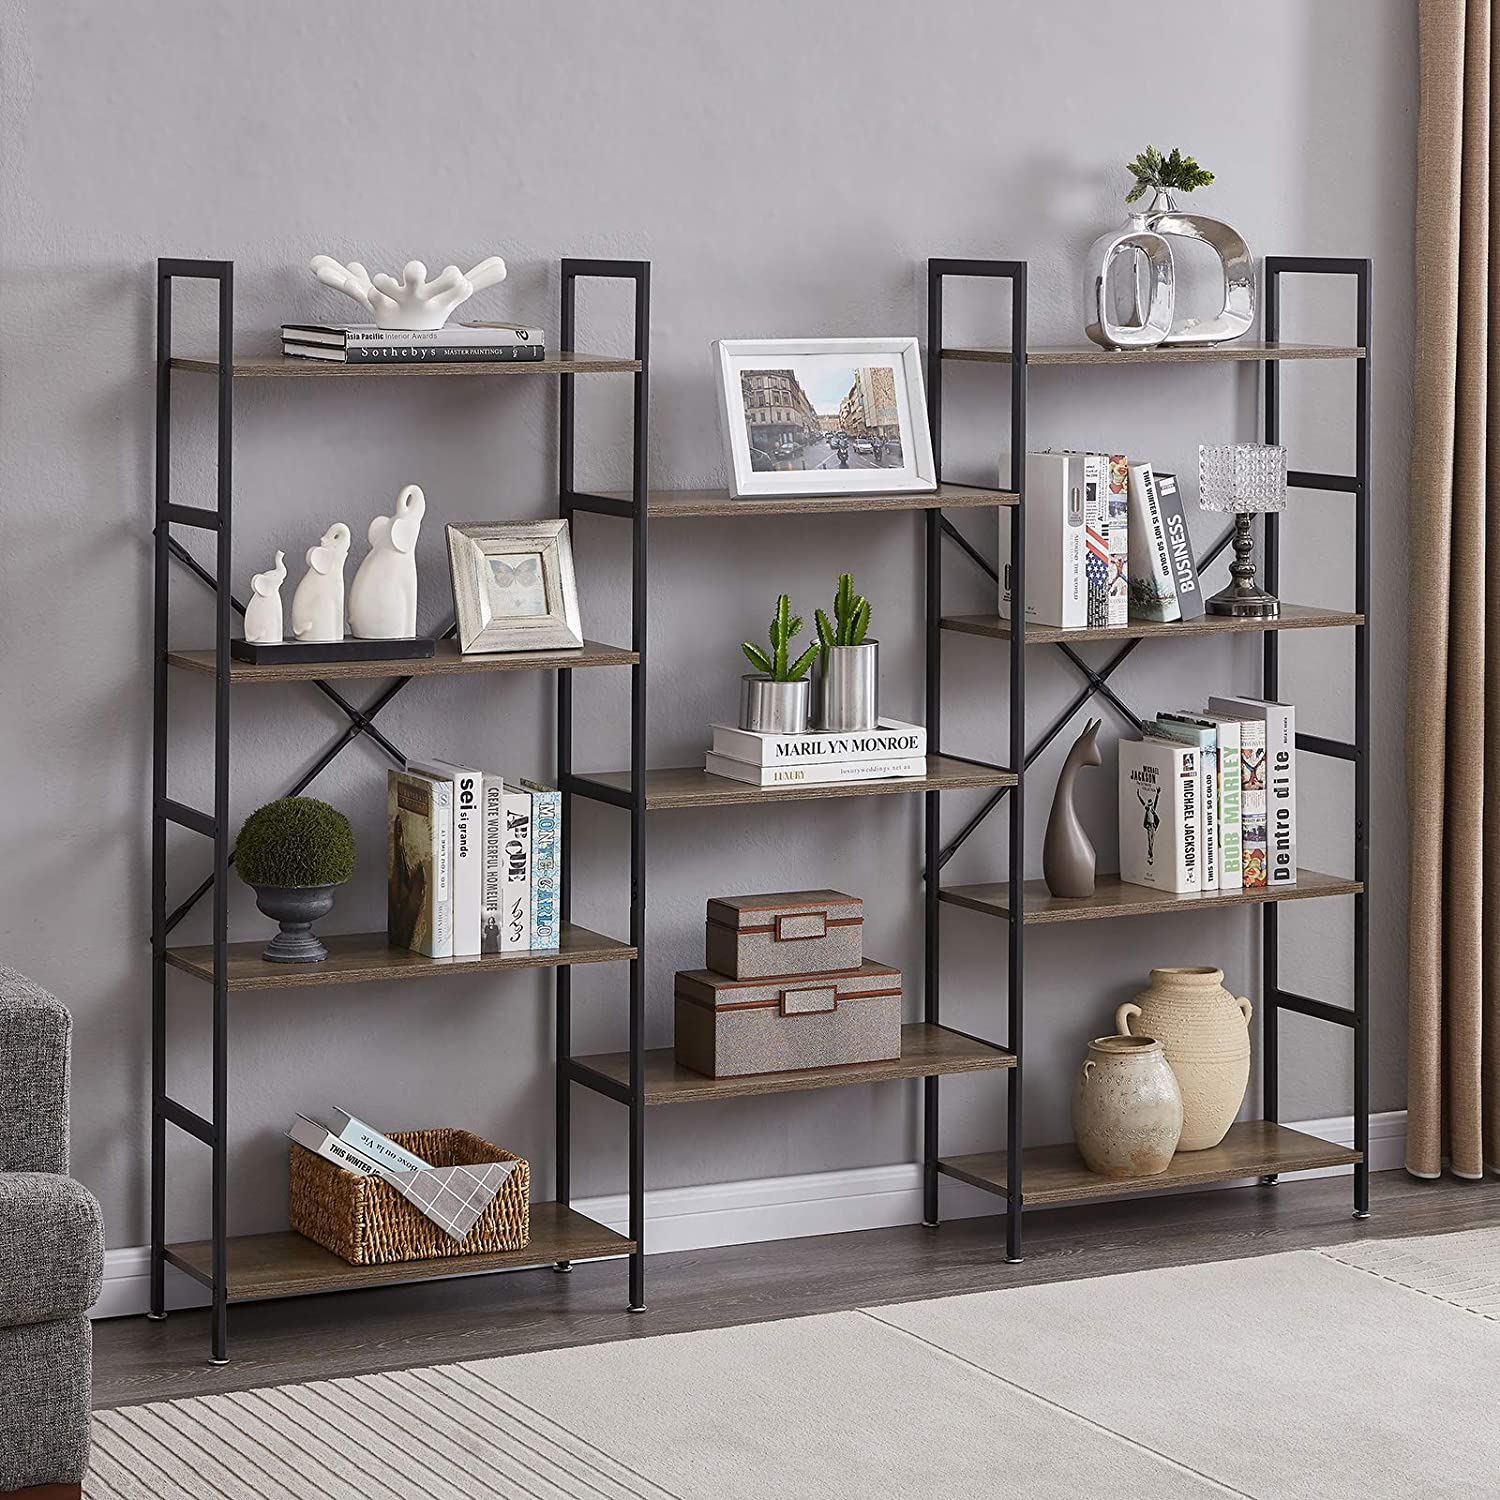 Superjare Triple Wide 4-Tier Bookshelf, Rustic Industrial Style Book Shelf, Wood and Metal Bookcase Furniture for Home & Office - Vintage Brown